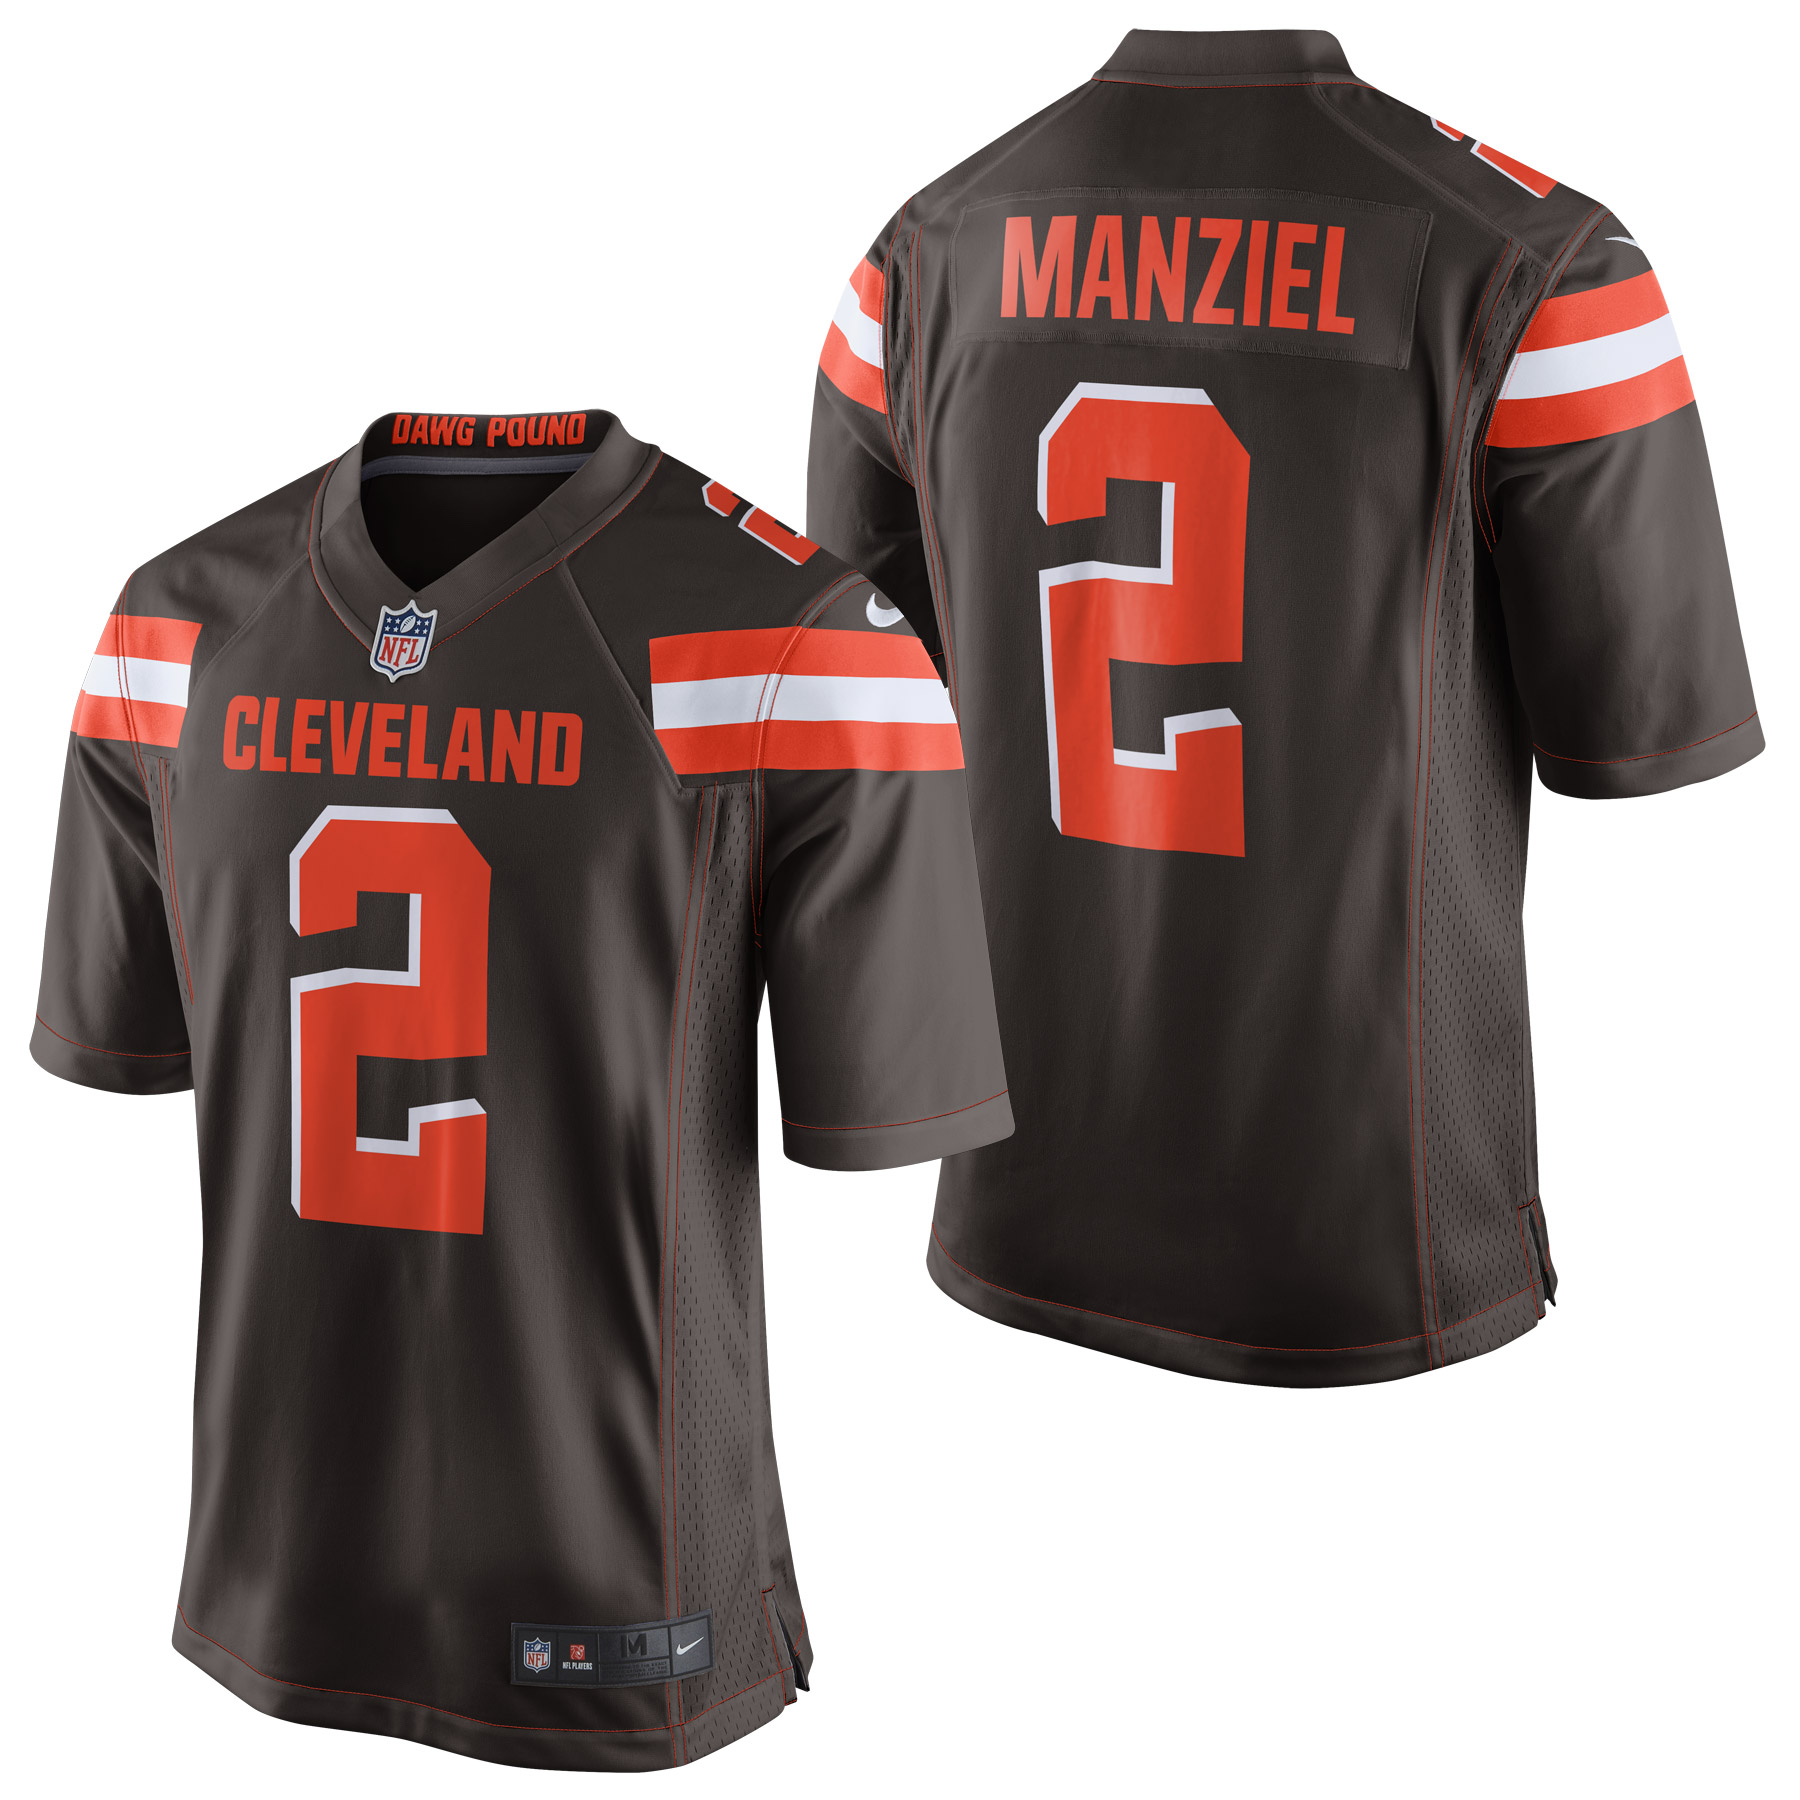 Cleveland Browns Home Game Jersey - Johnny Manziel